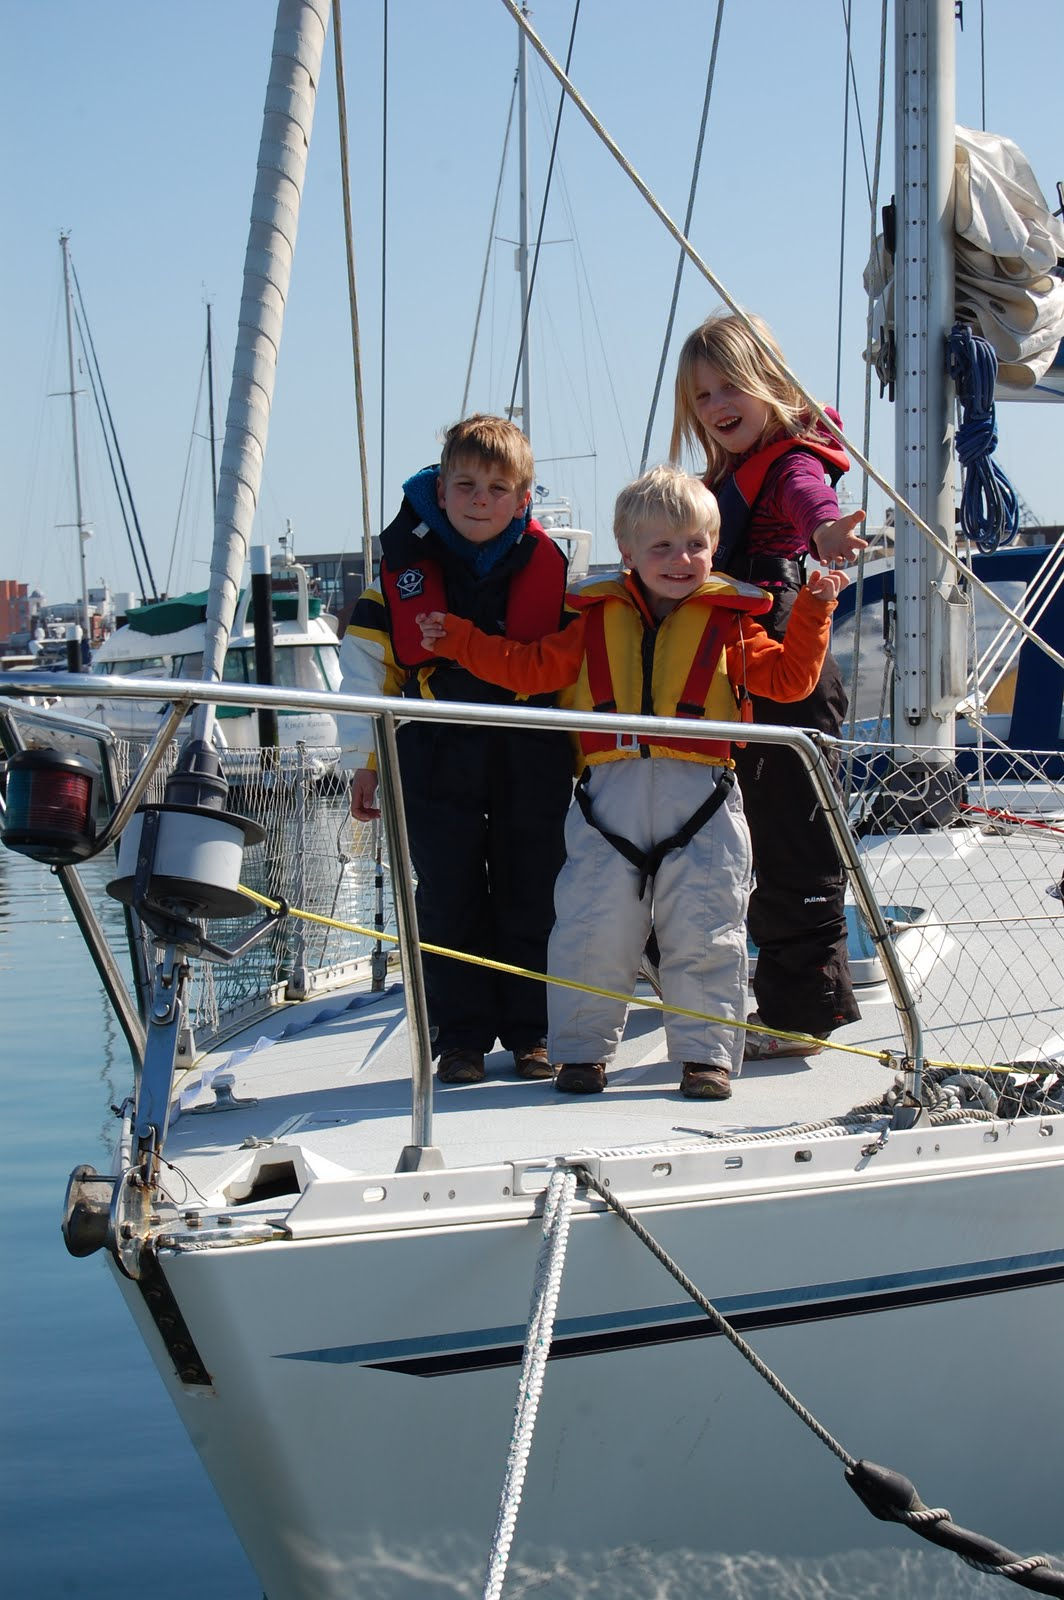 Children on the foredeck